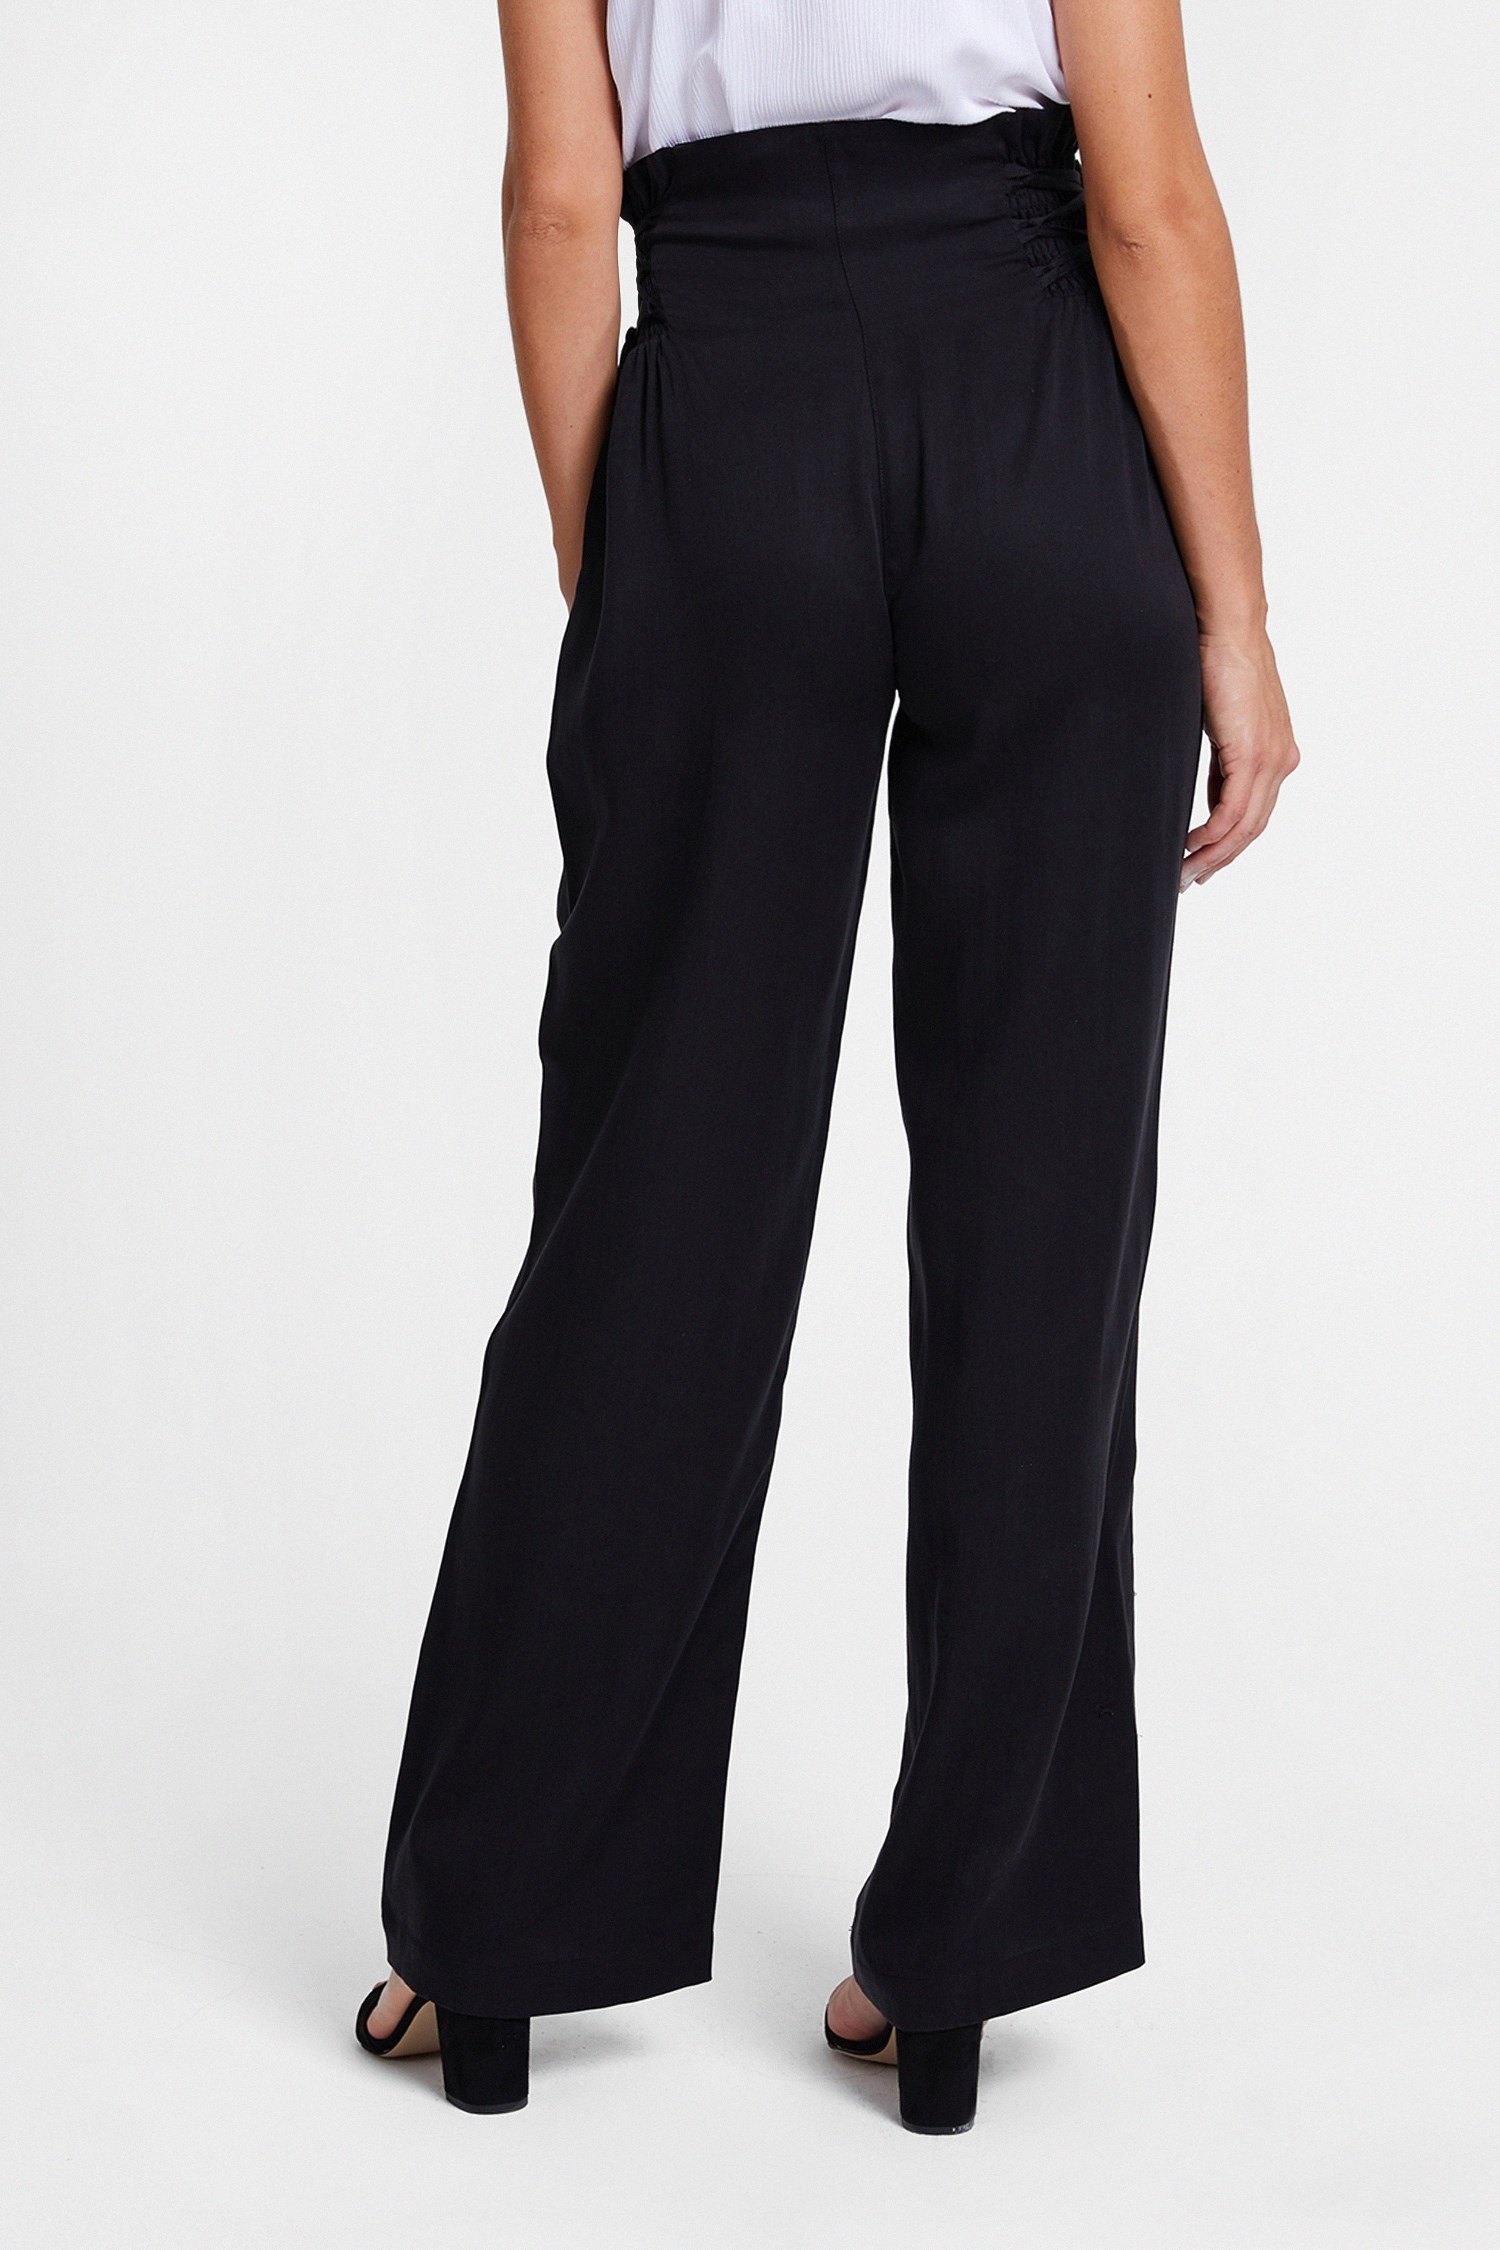 Women Black Pants with Lace Up Detail